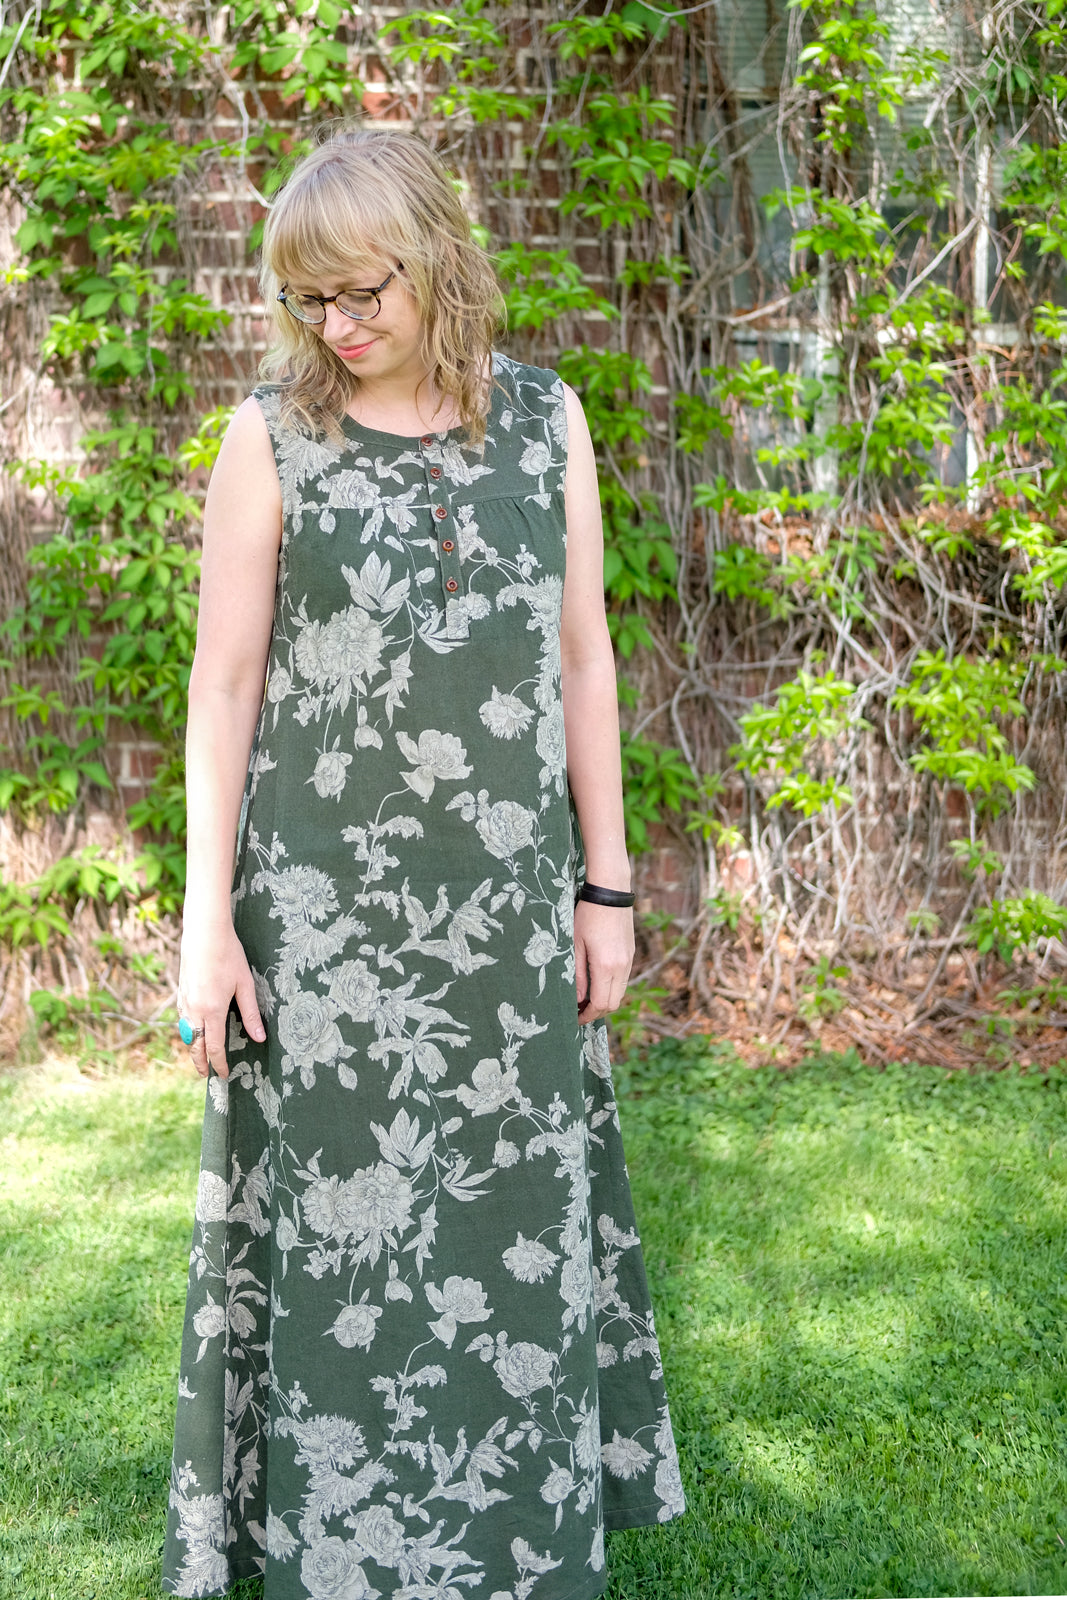 Amber in her Maxi Floral Brome